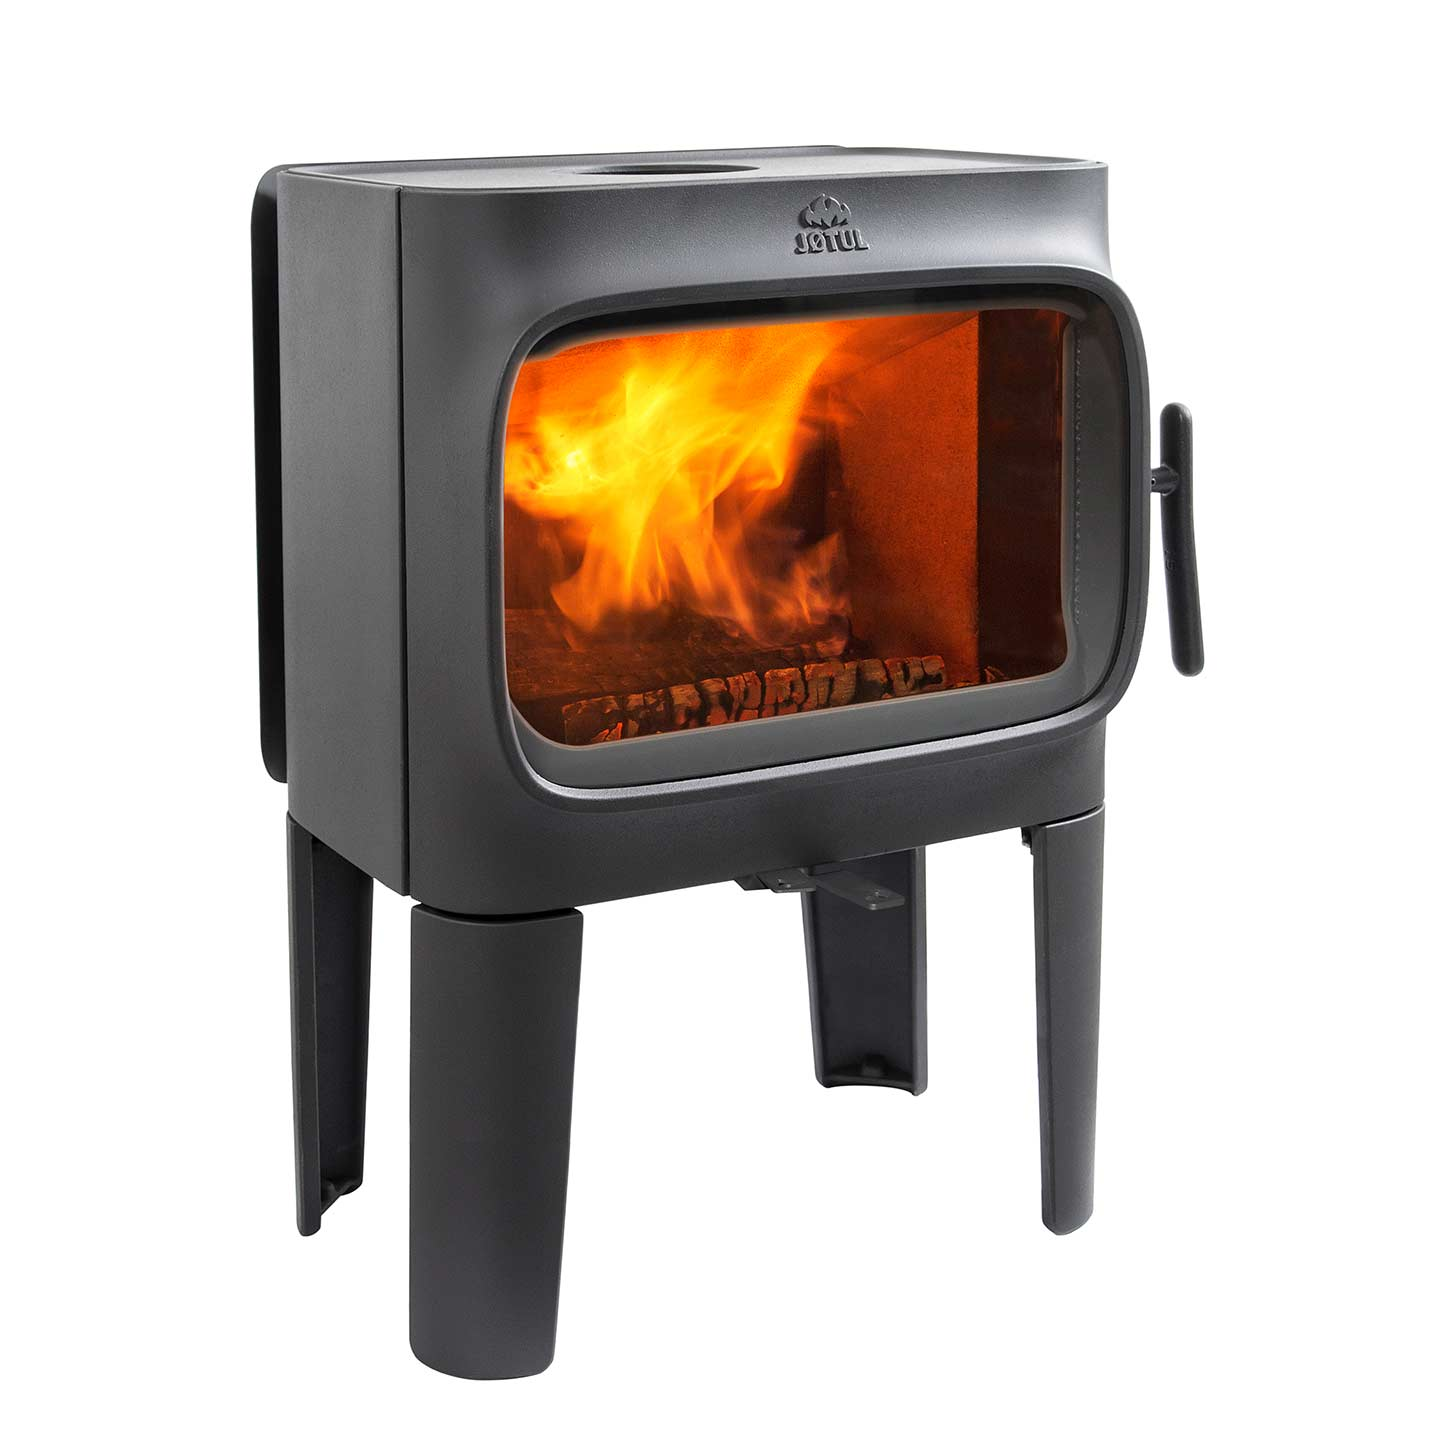 Jotul F305 Long Legs Wood Burning Stove The Stove Site